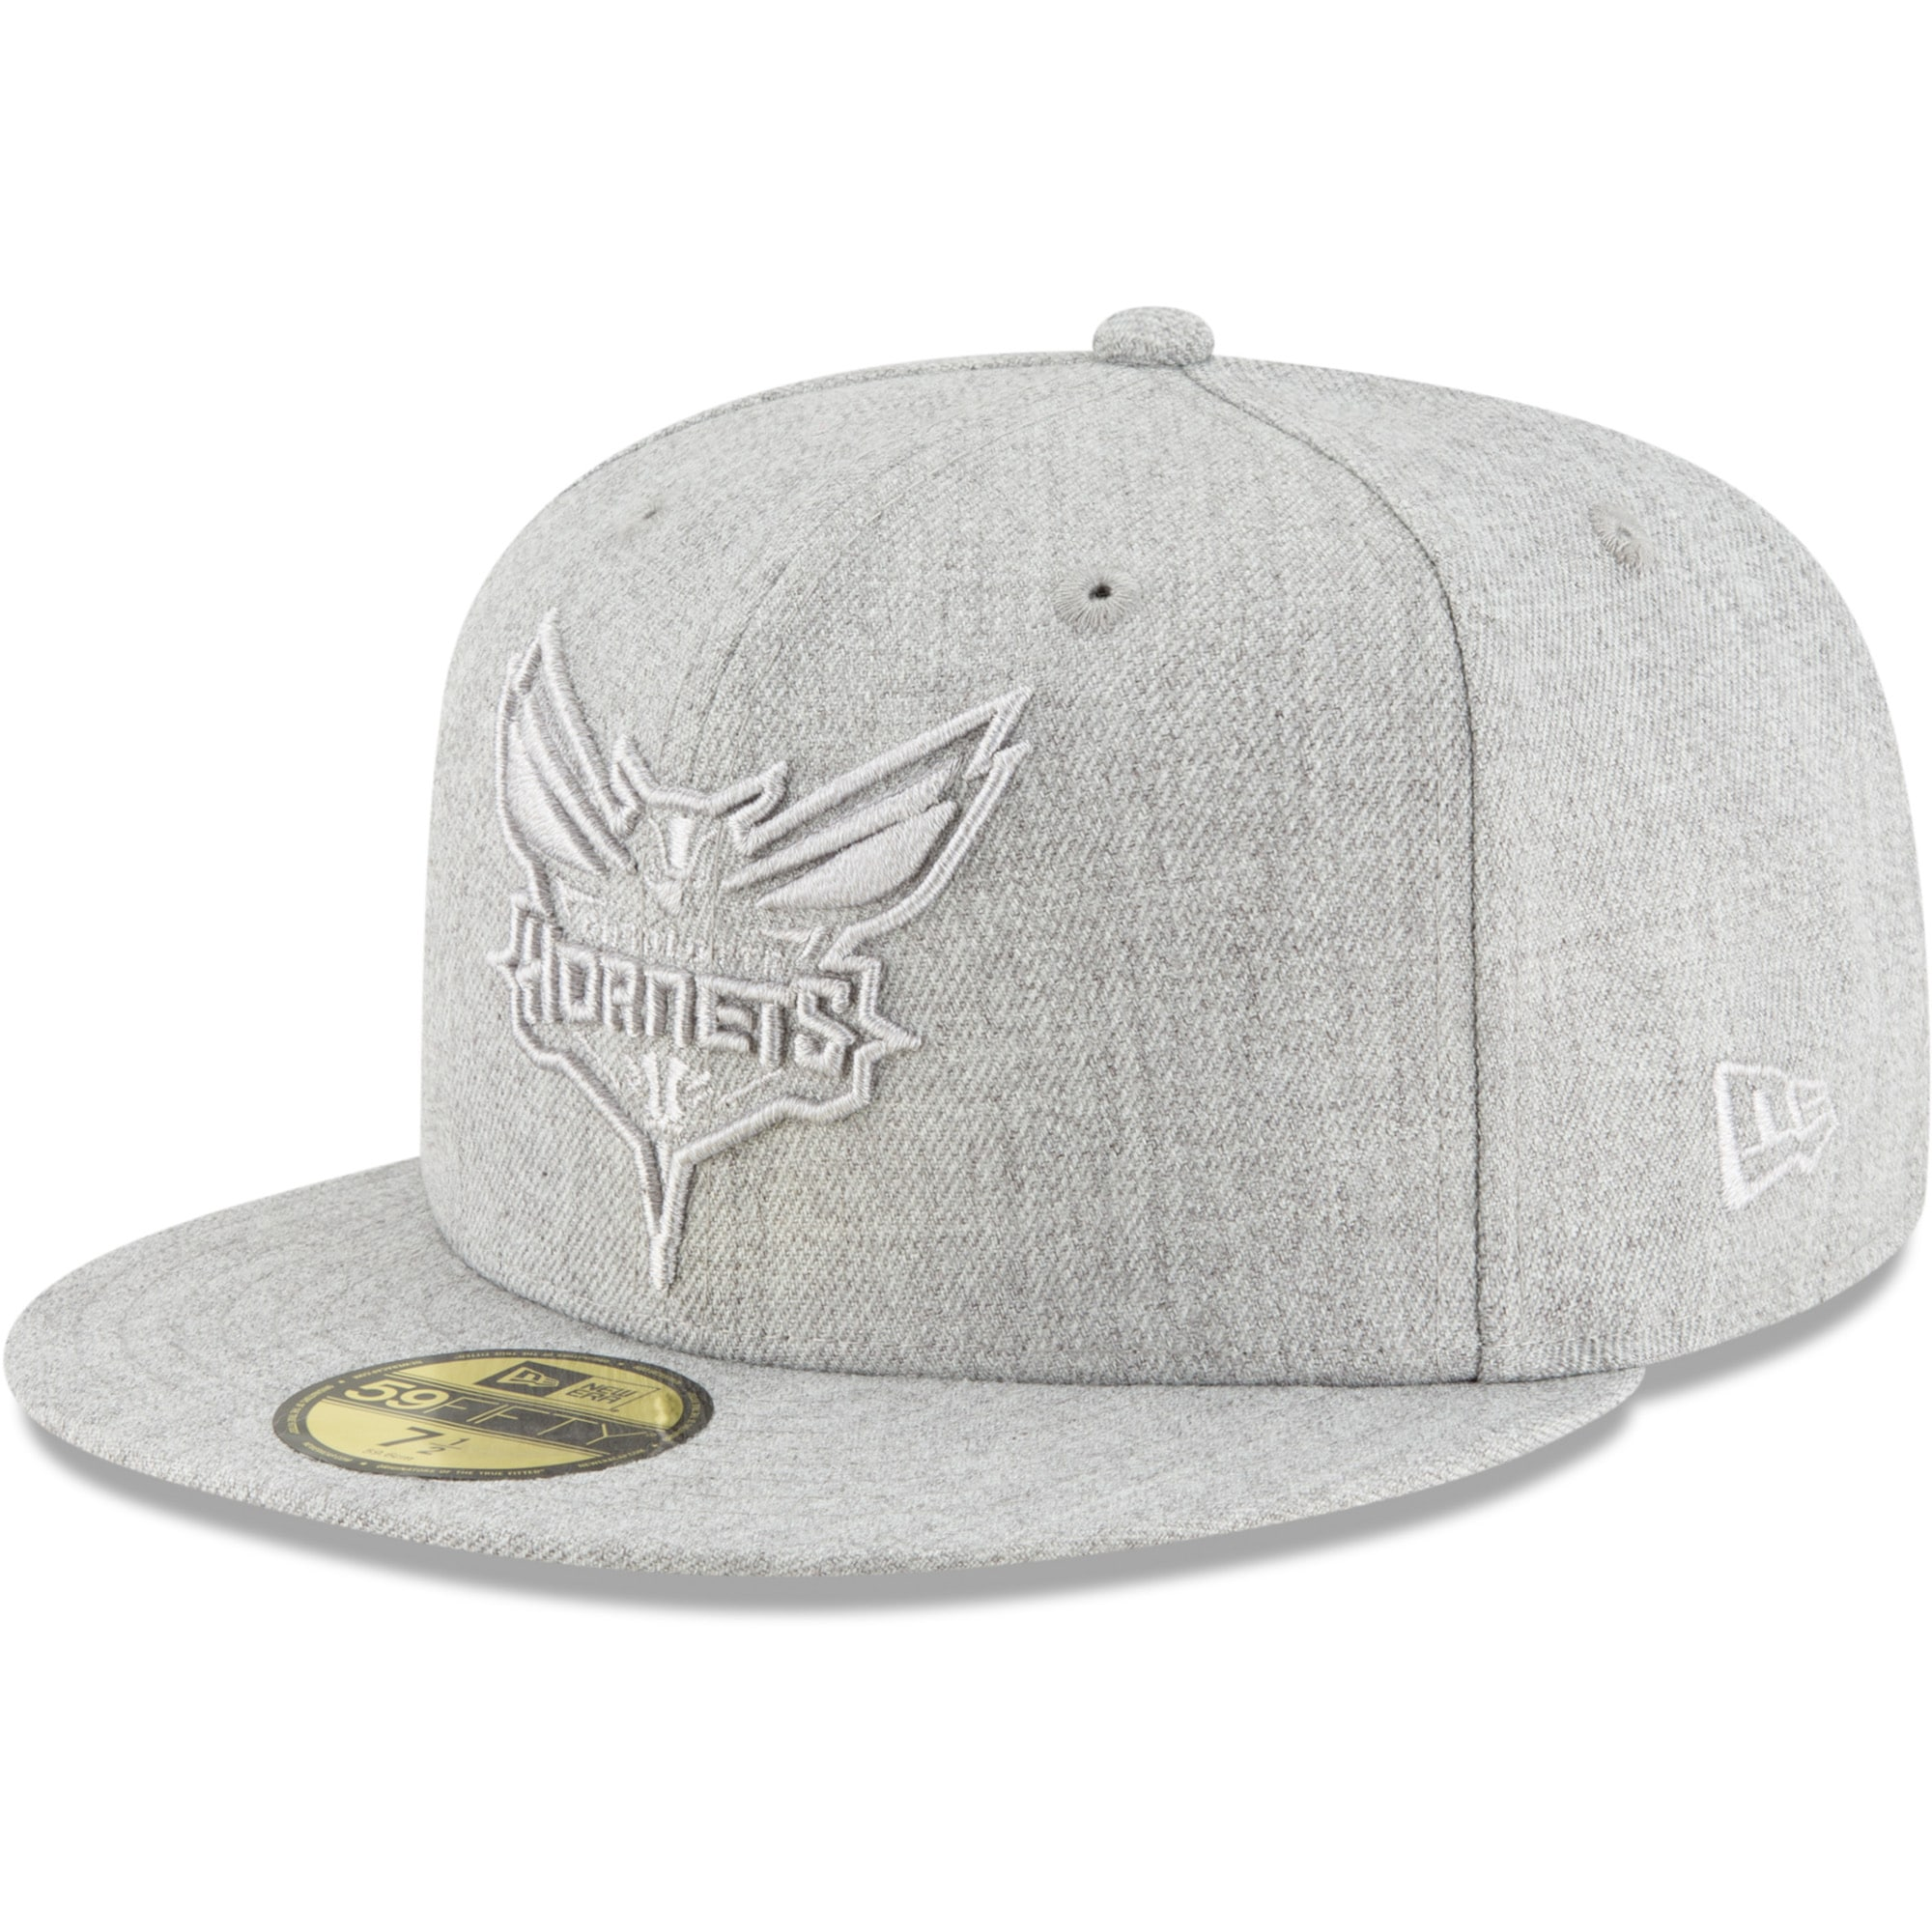 Charlotte Hornets New Era Twisted Frame 59FIFTY Fitted Hat - Gray